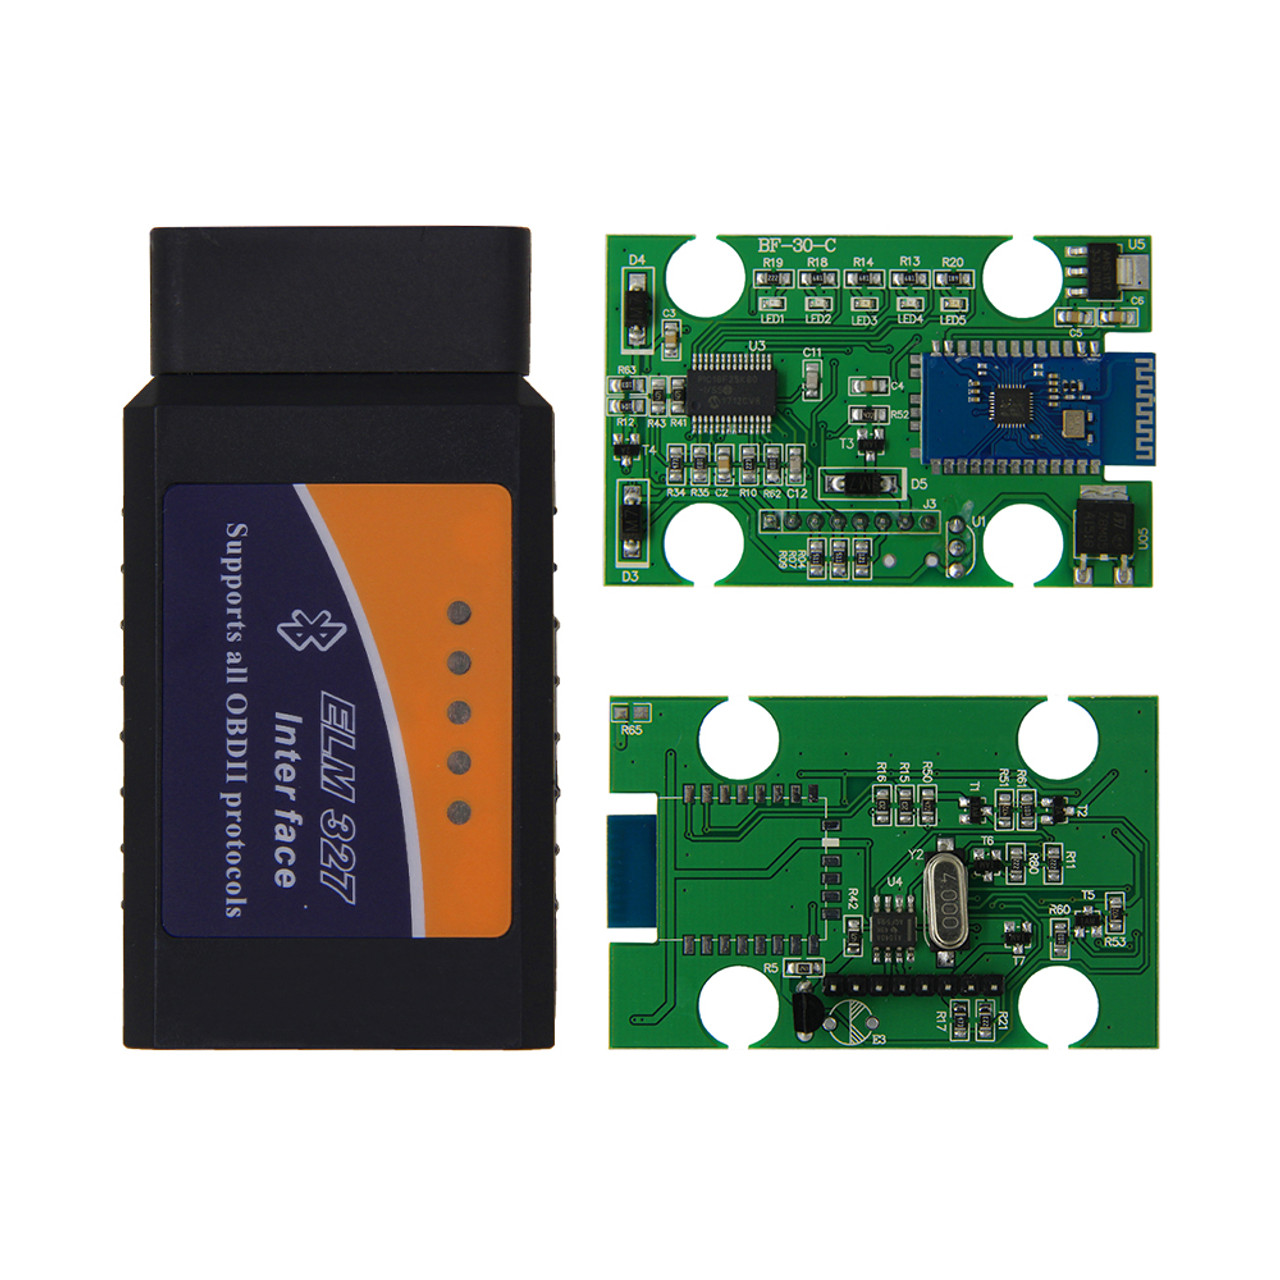 Elm327 Bluetooth Obd2 Scanner V15 Pic18f25k80 Obd Innovations Automations Gt Motor Control Circuits Pwm Controller L13512 Car Diagnostic With Microchip